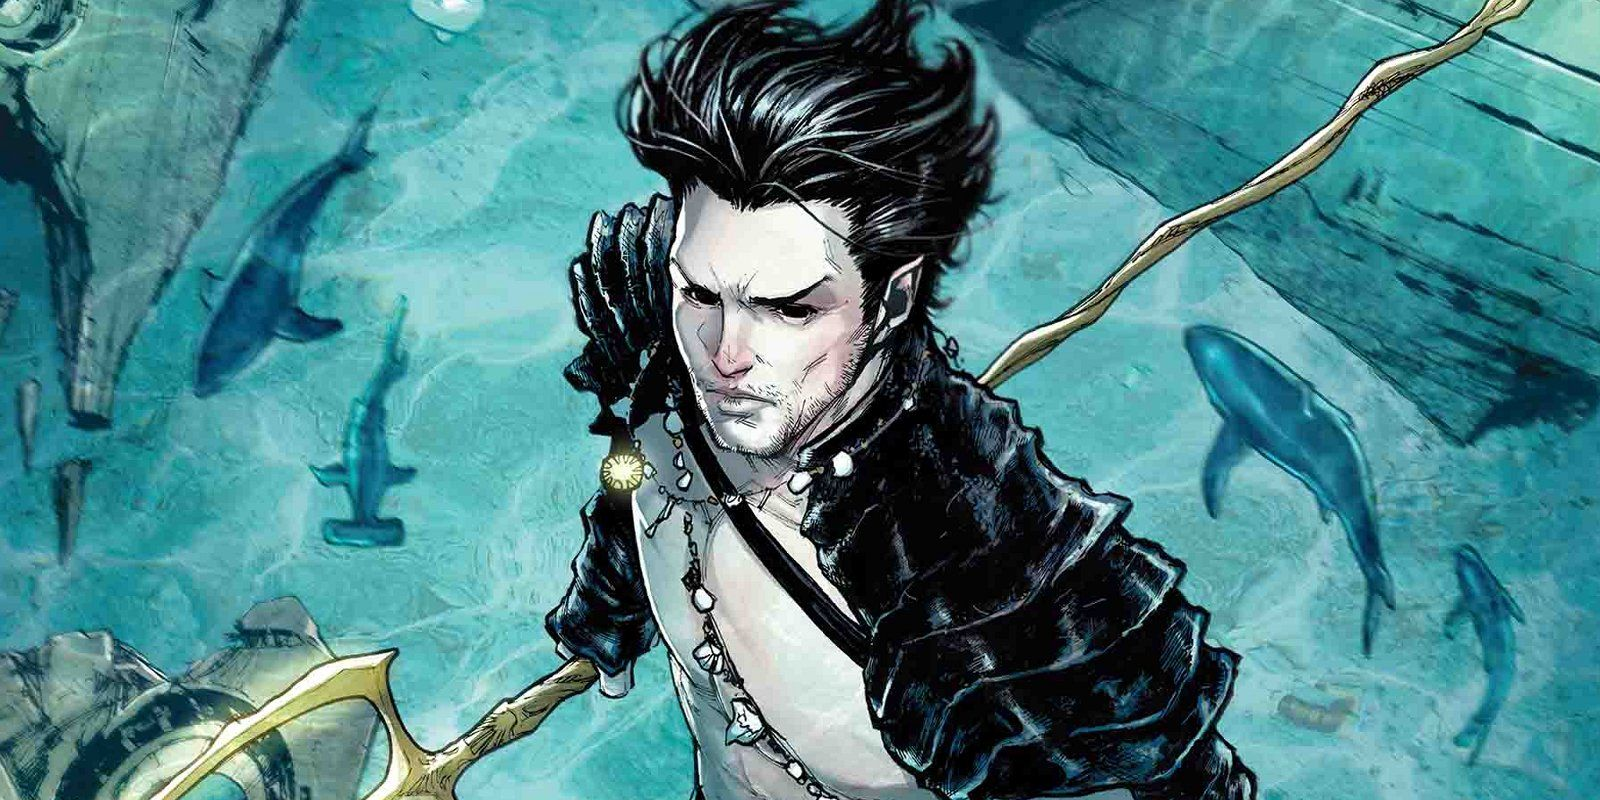 Namor's New Look Is Perfect For a Marvel Movie | ScreenRant